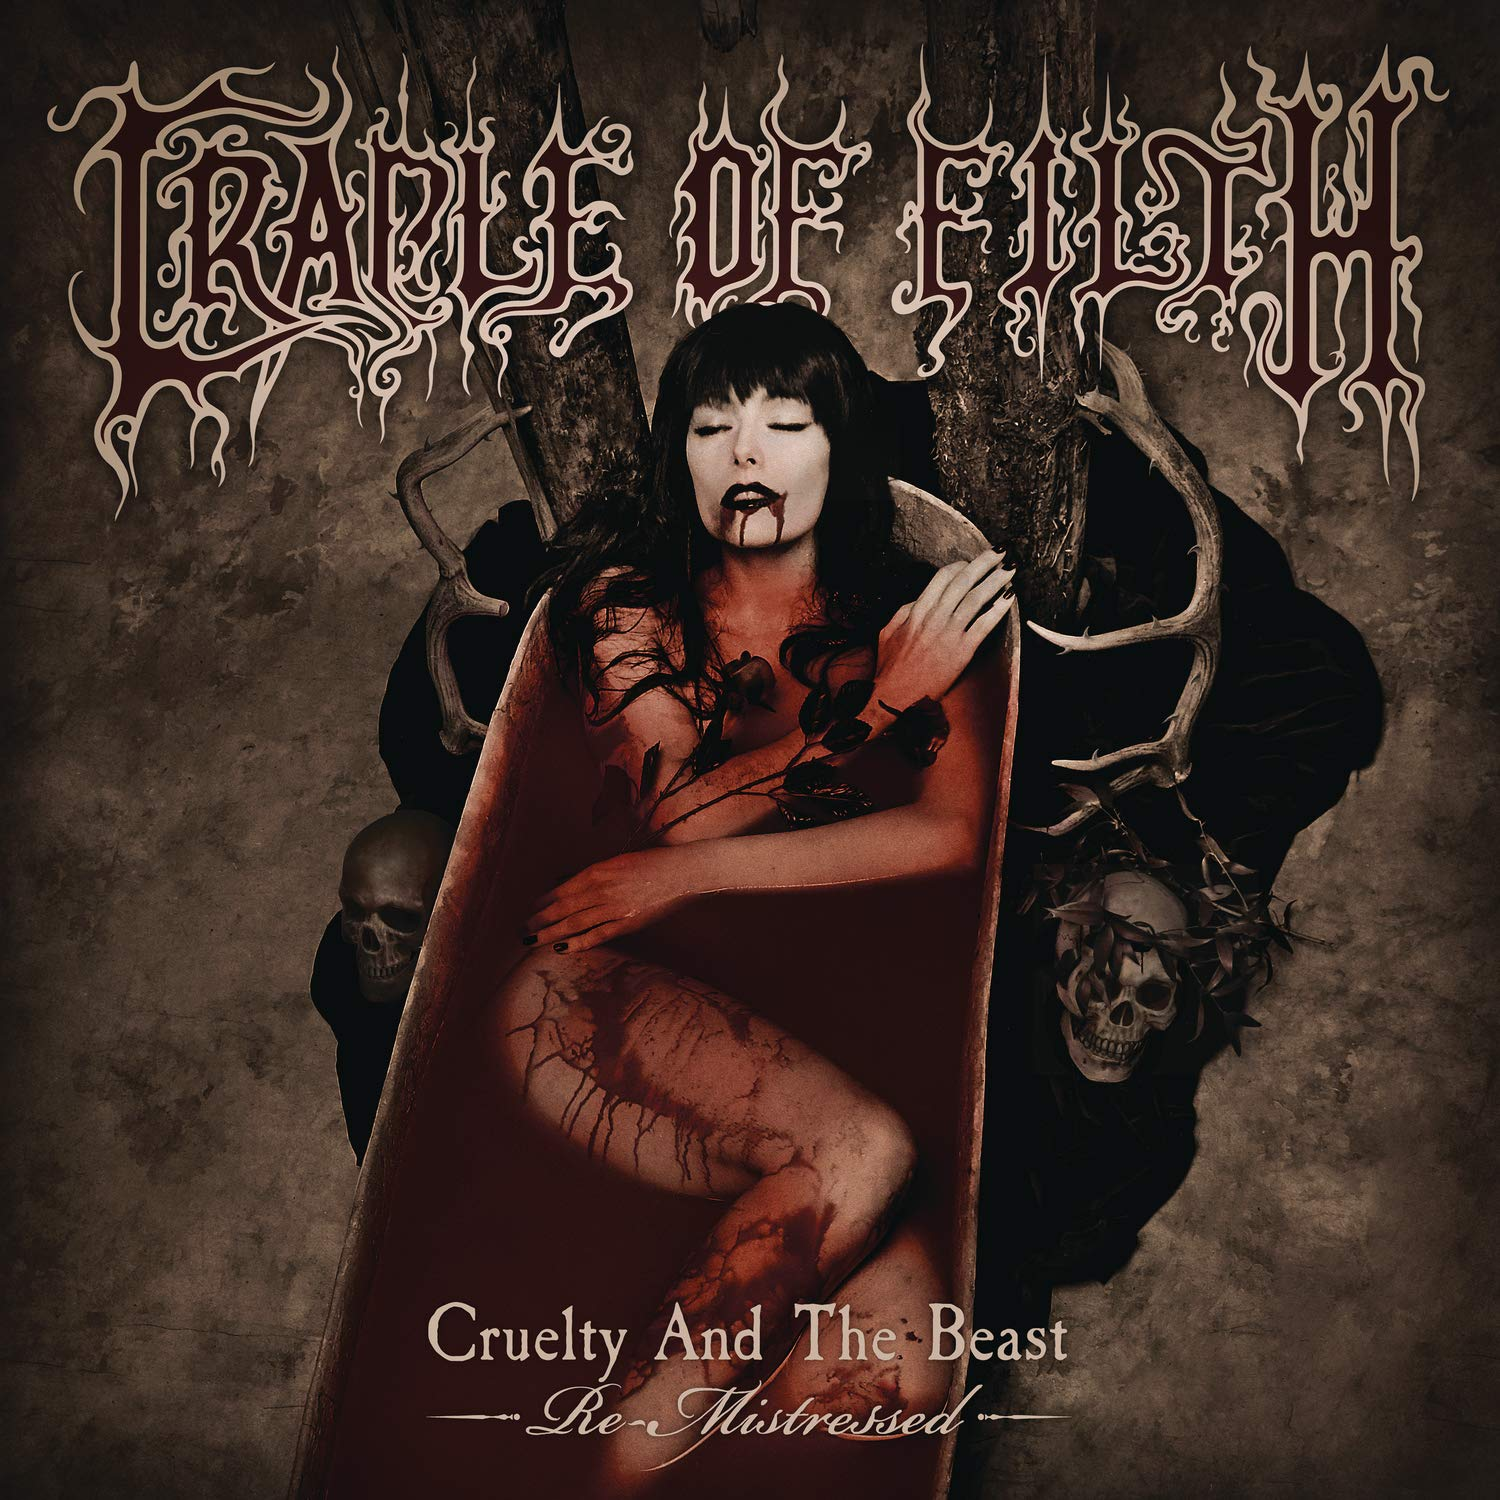 Cradle Of Filth - Cruelty And The Beast - Re-Mistressed [Indie Exclusive Limited Edition Crystal Clear 2LP]